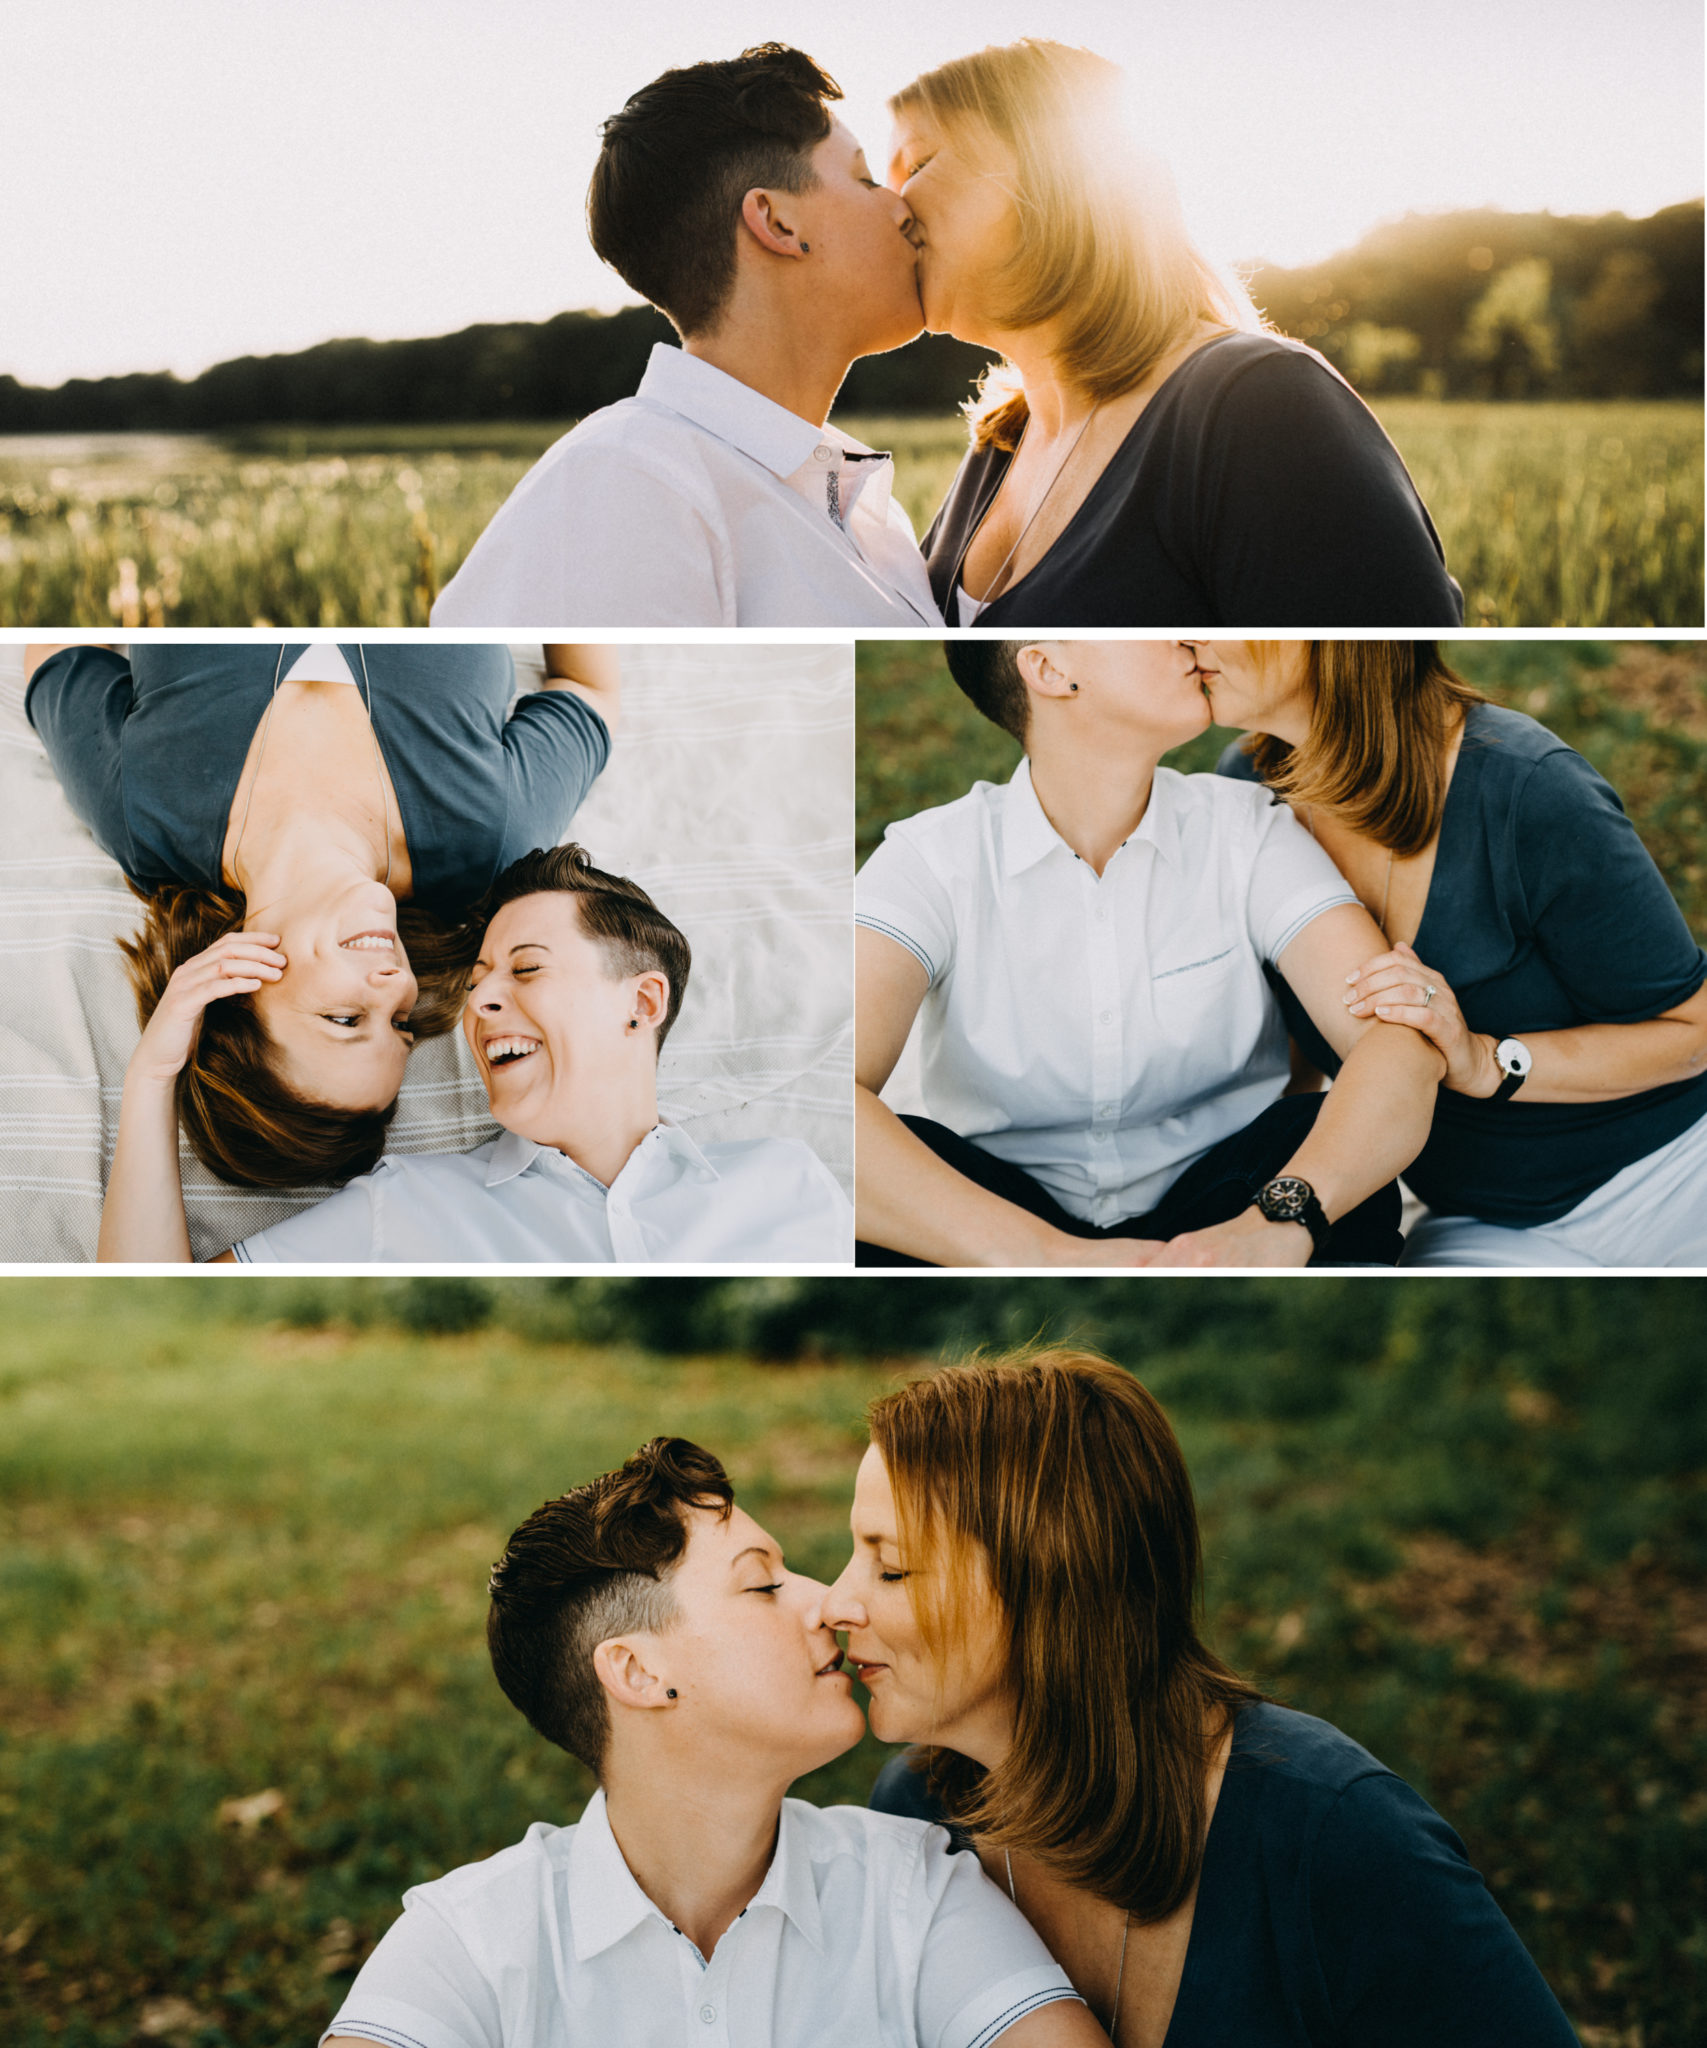 kensington metropark engagement session